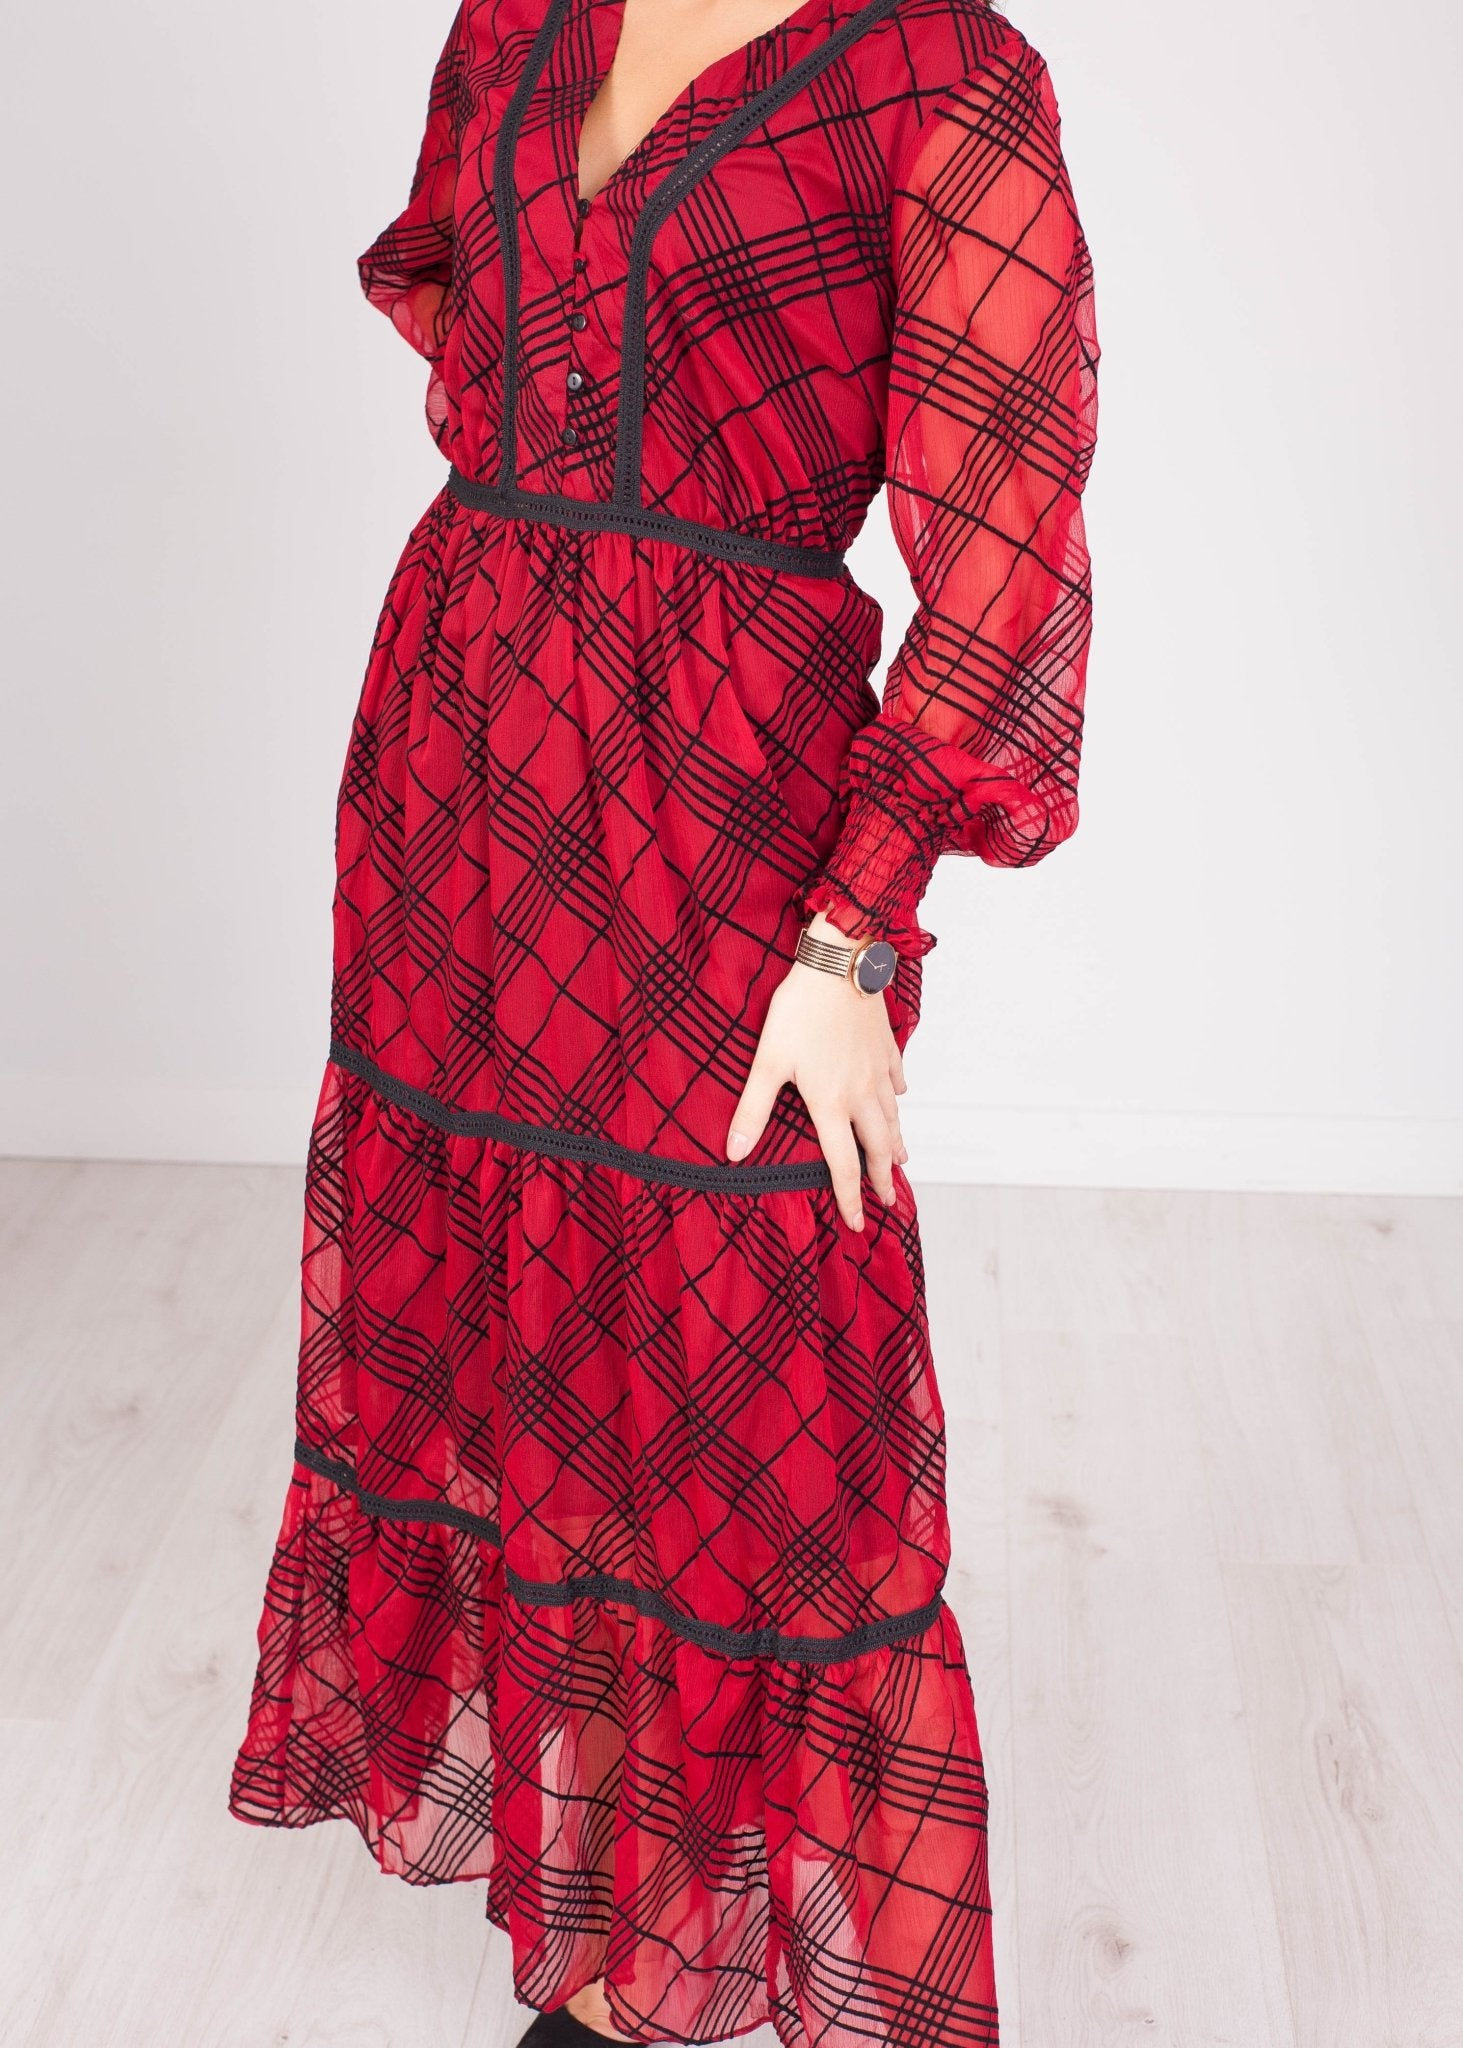 Emilia Red & Black Velvet Plaid Dress - The Walk in Wardrobe